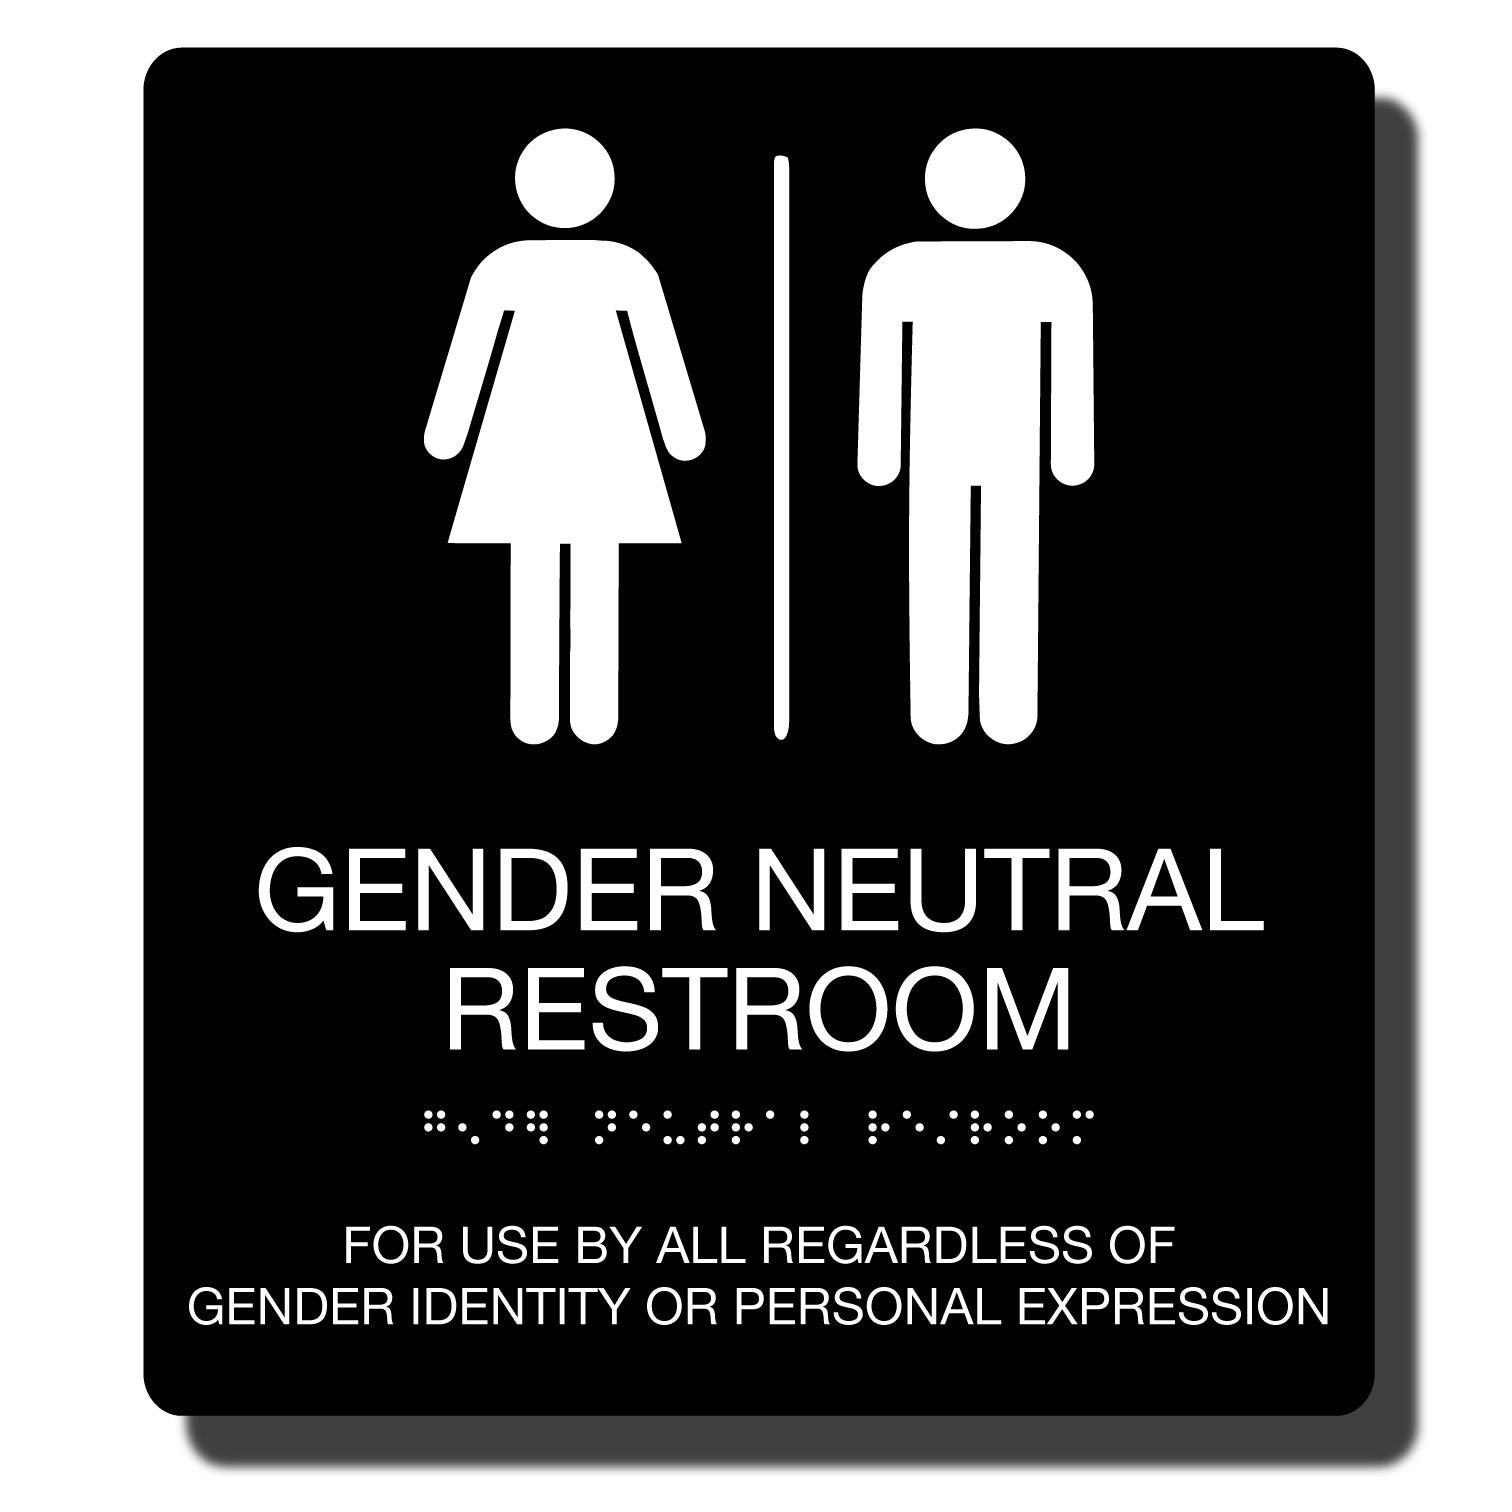 Standard ADA Sign - NapADASigns - ADA Gender Neutral Restroom Sign with Braille - Black with White - 9